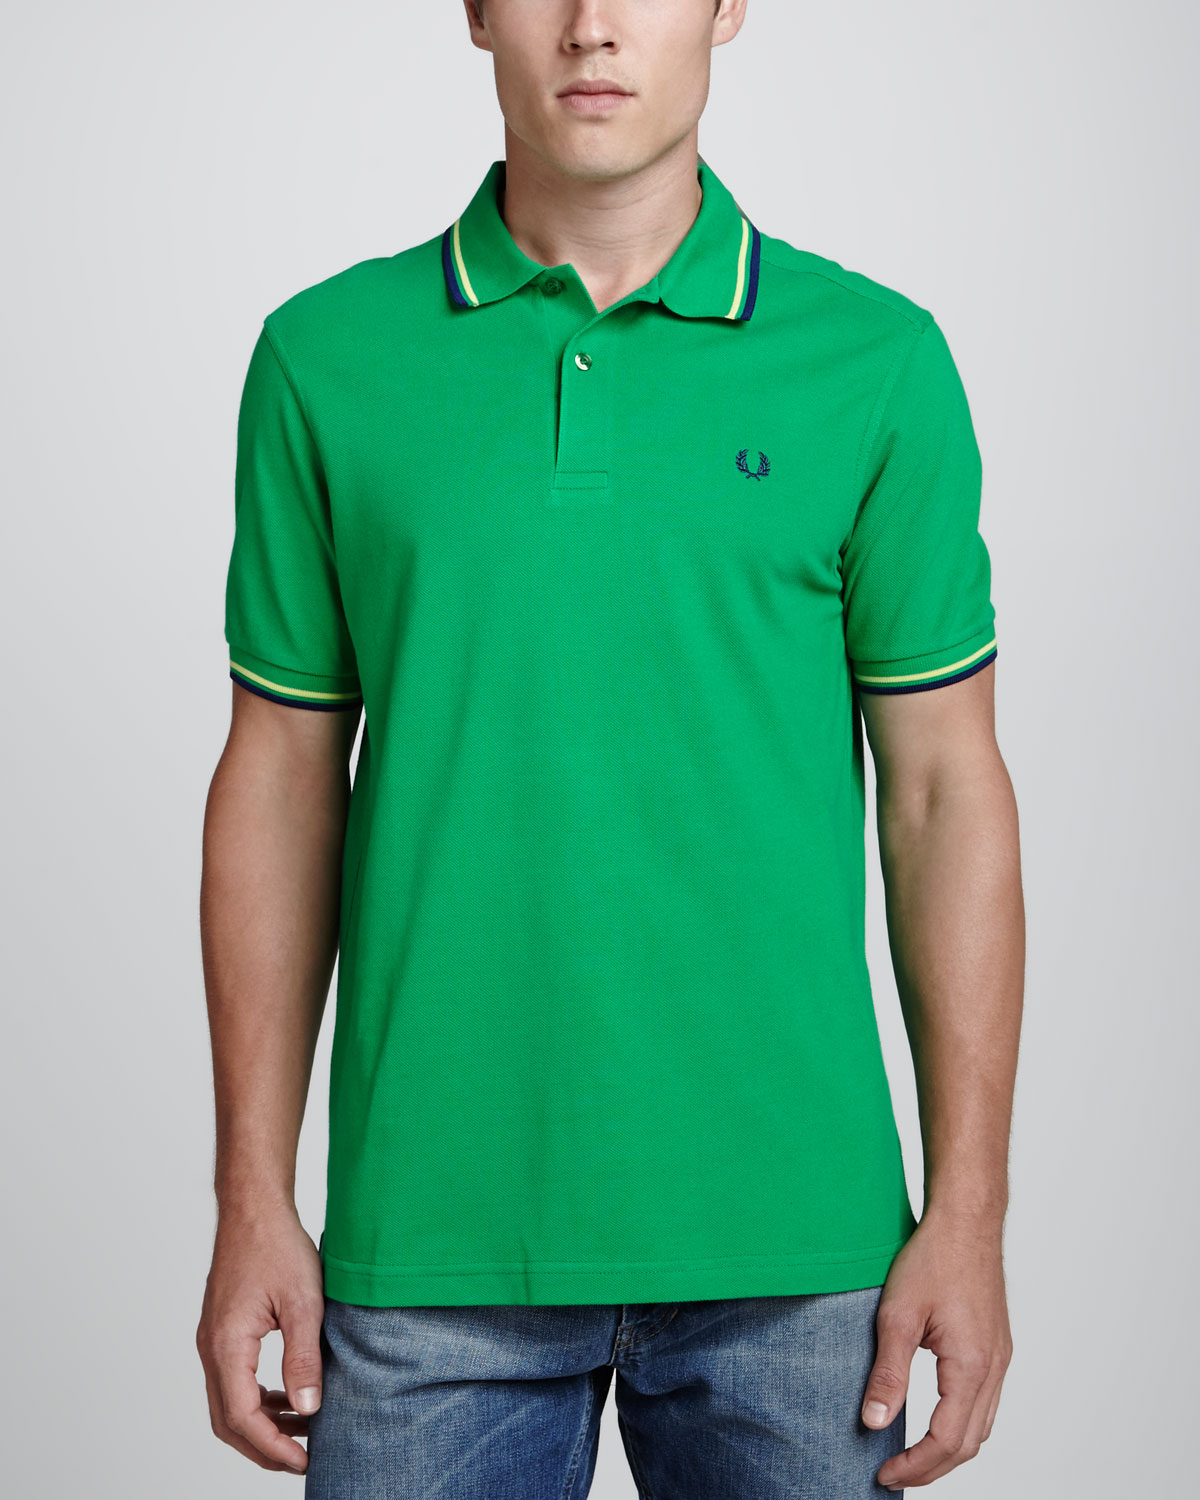 Lyst - Fred Perry Twintipped Polo Shirt Kelly Green in ...